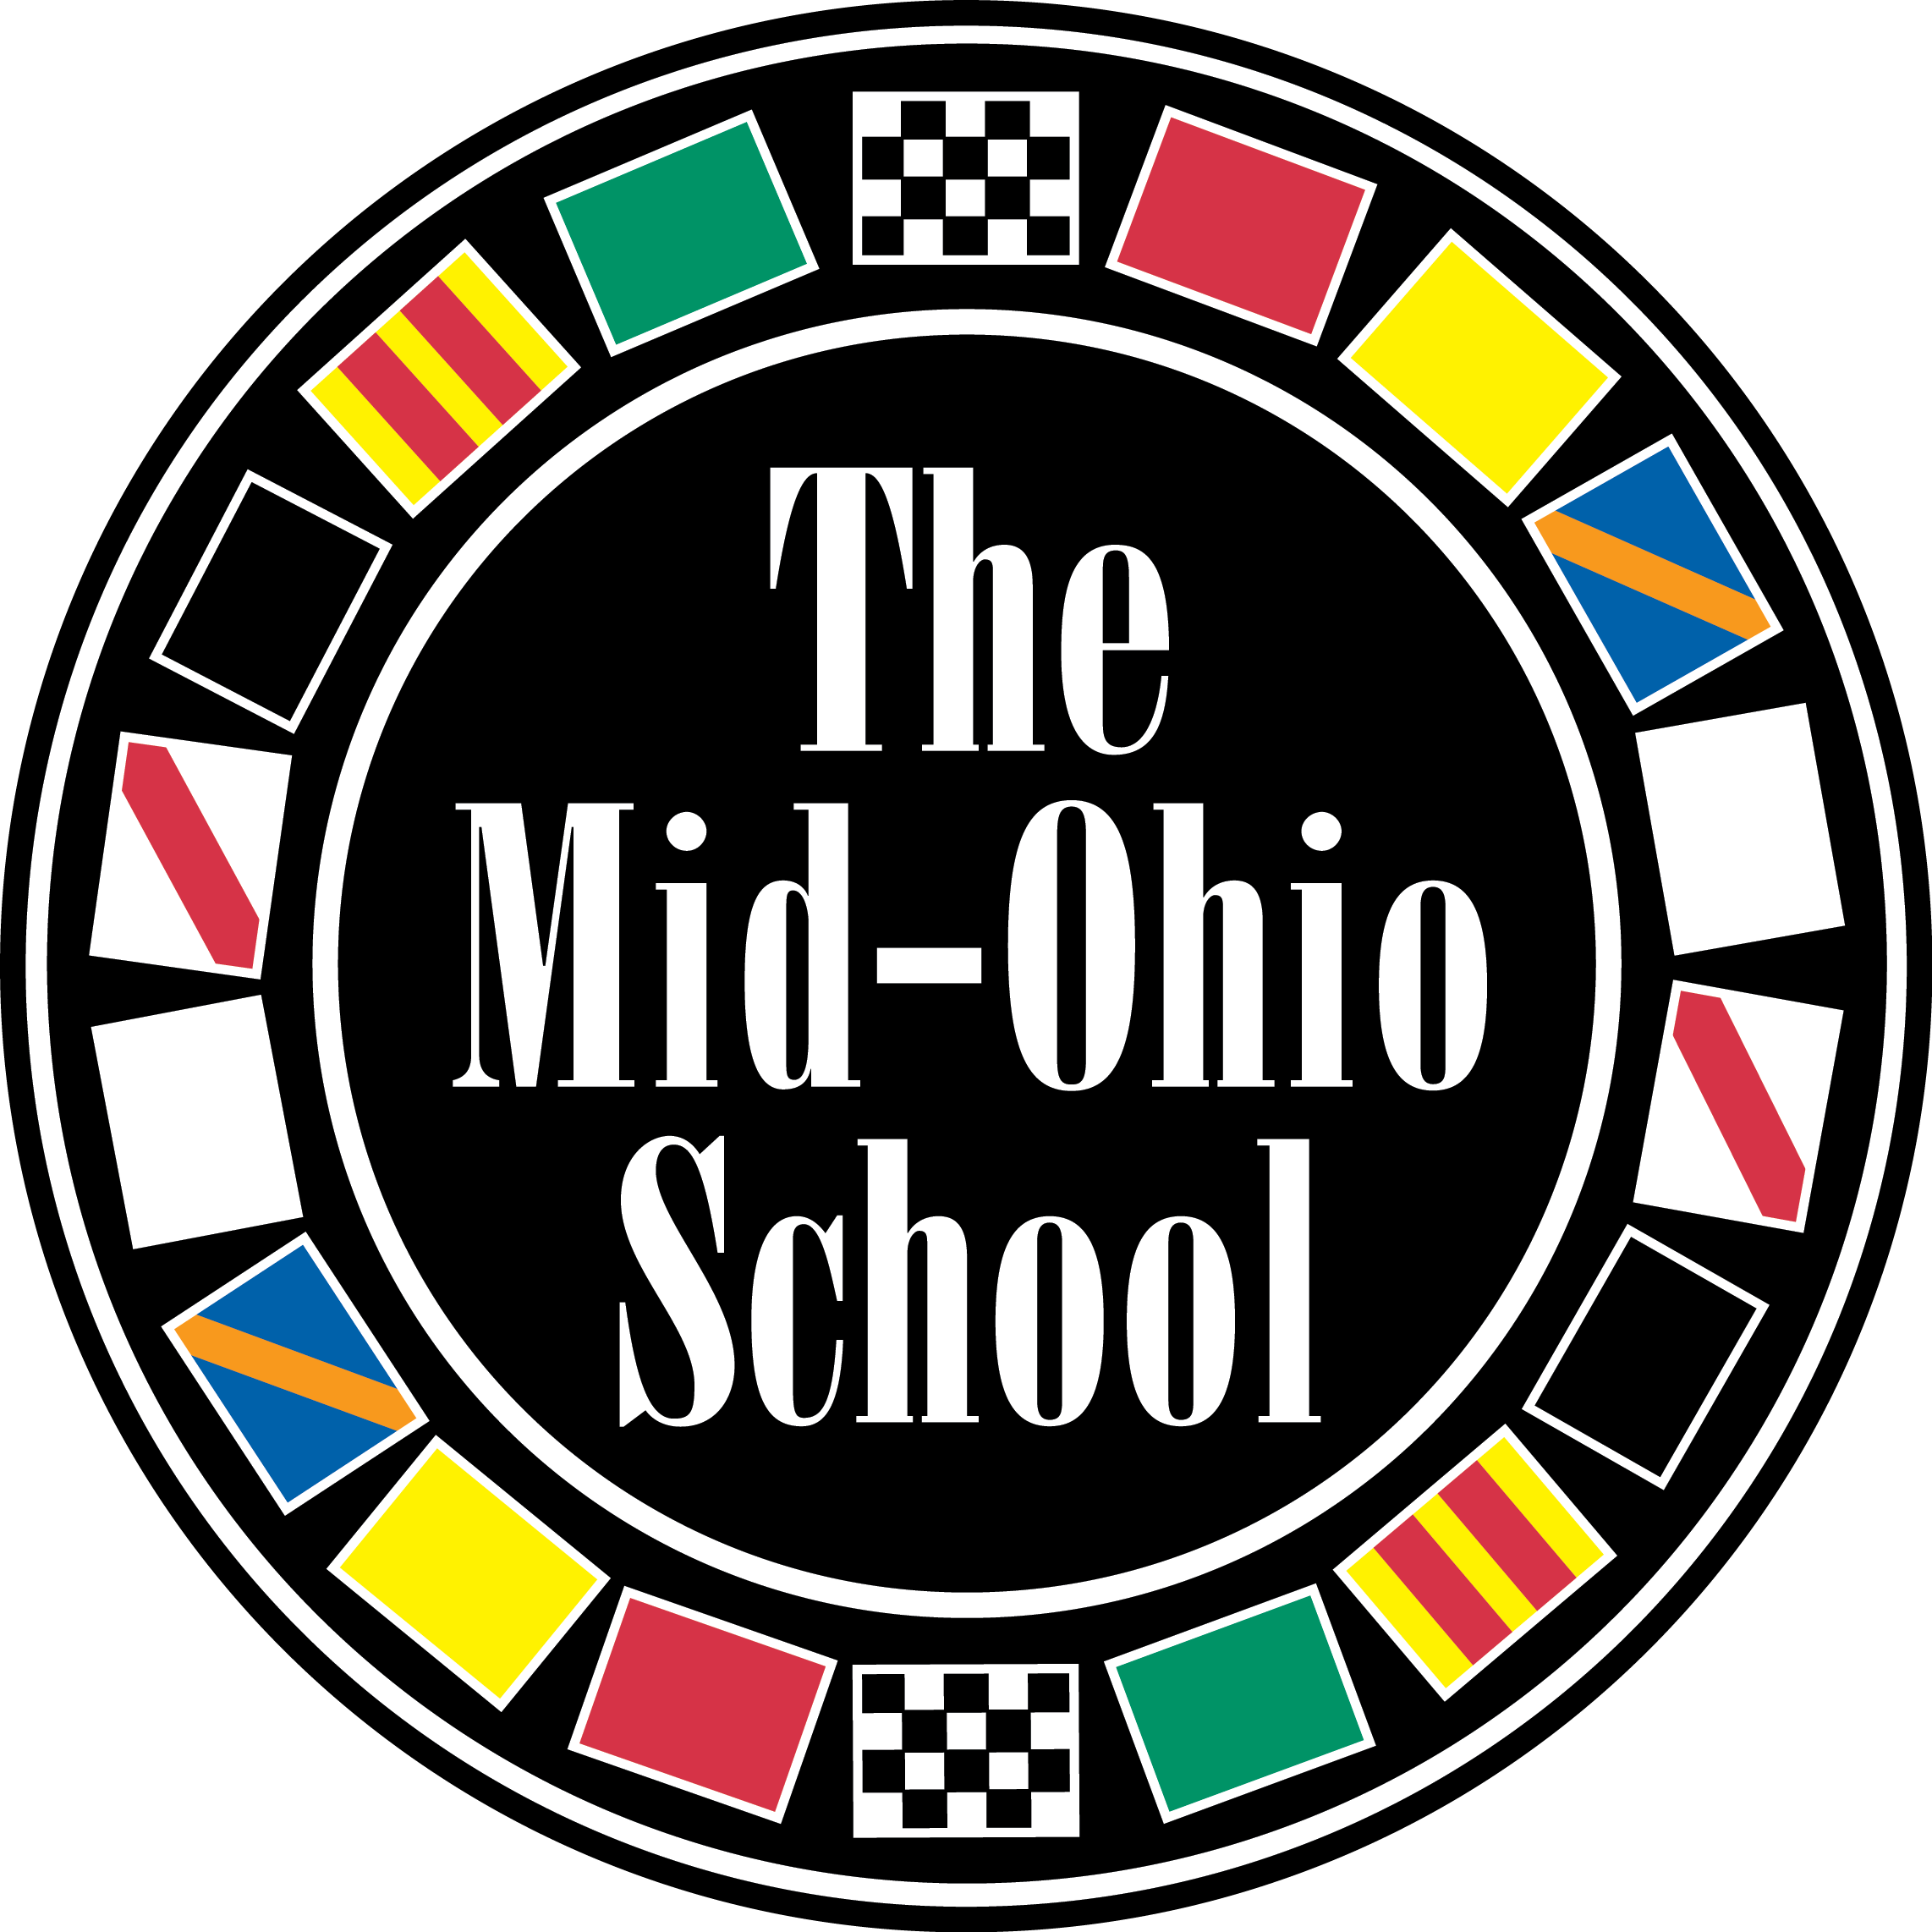 mid ohio sports car course instructors High School Academic Resume Examples